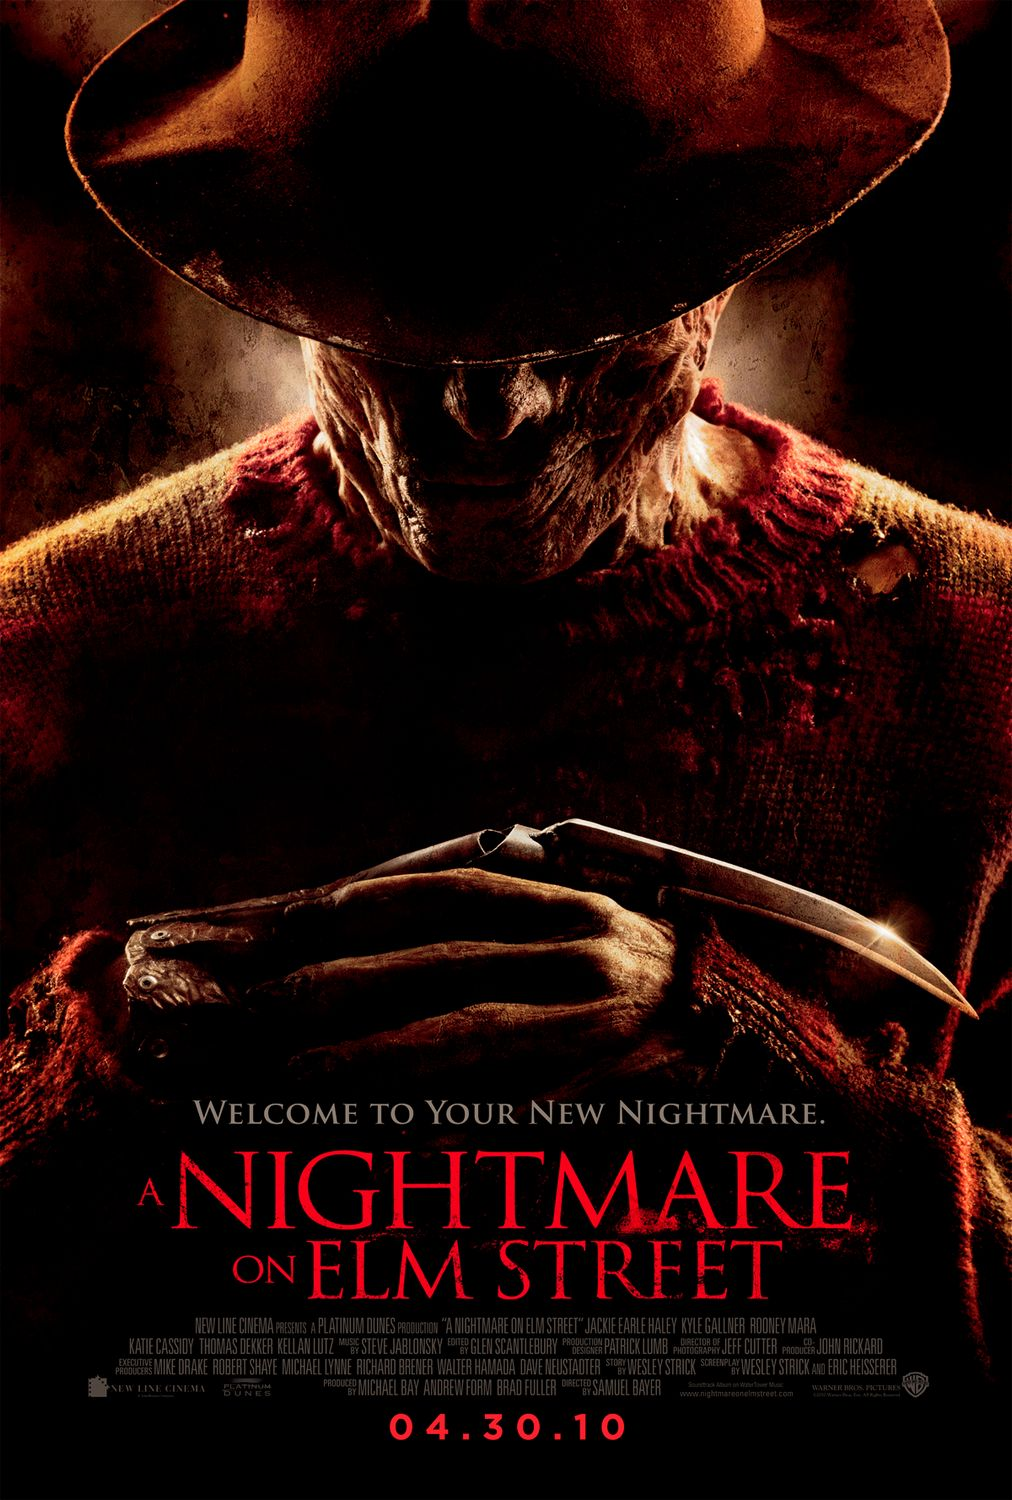 A Nightmare on Elm Street (2010 film)